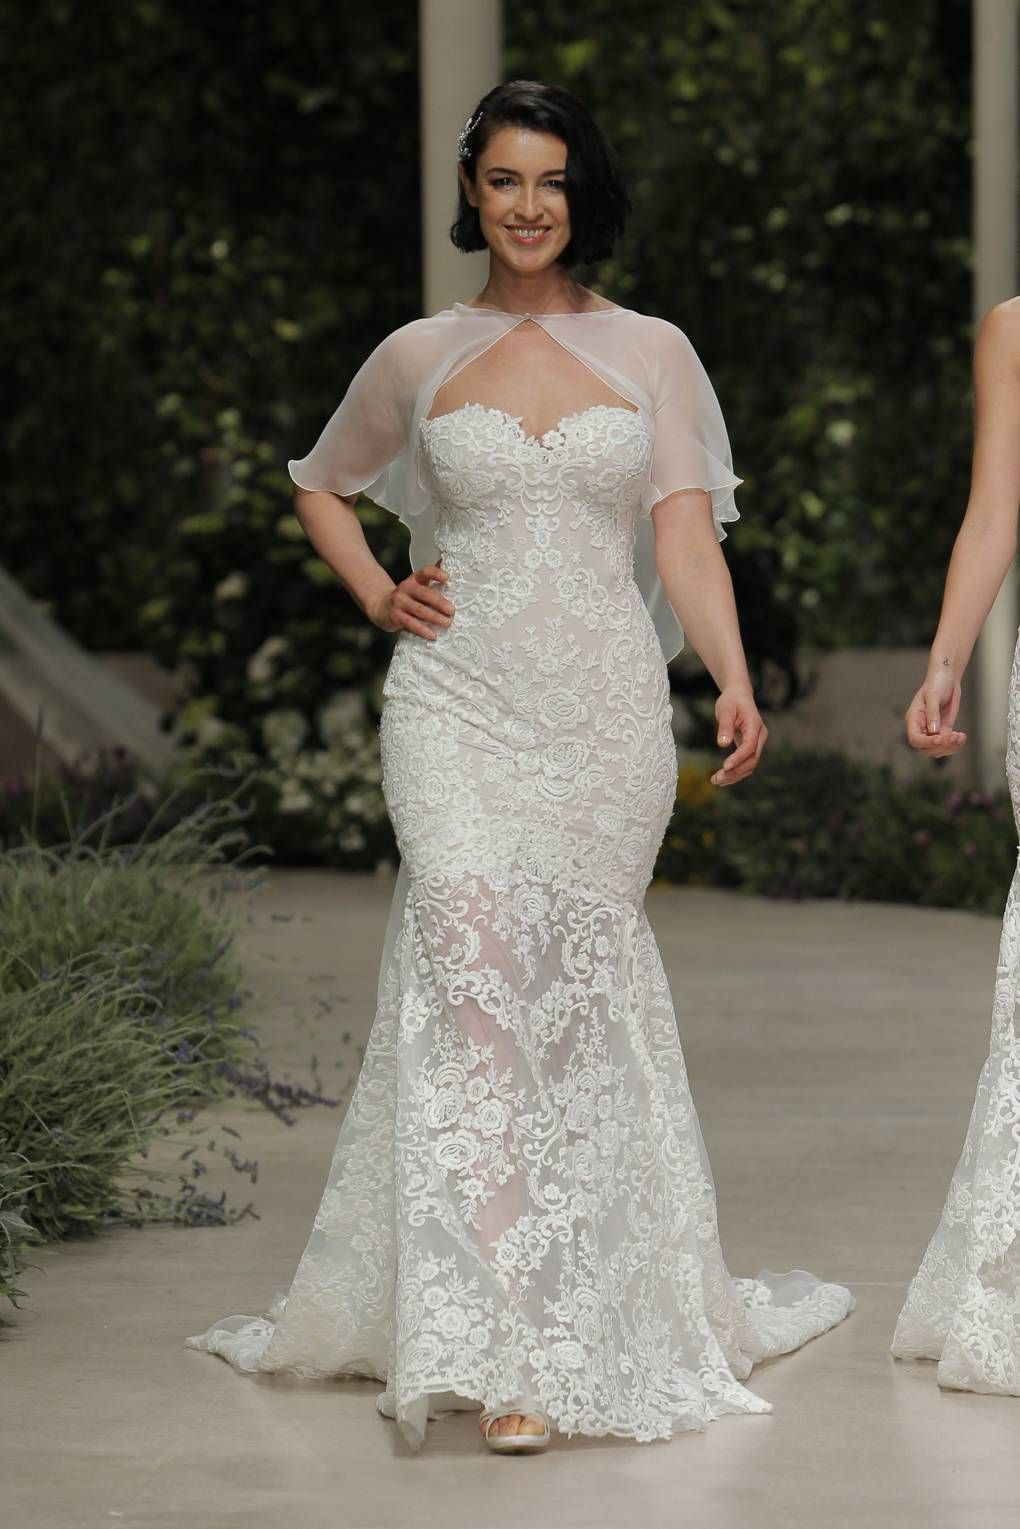 Wedding dresses for girls with curves in wedding dresses